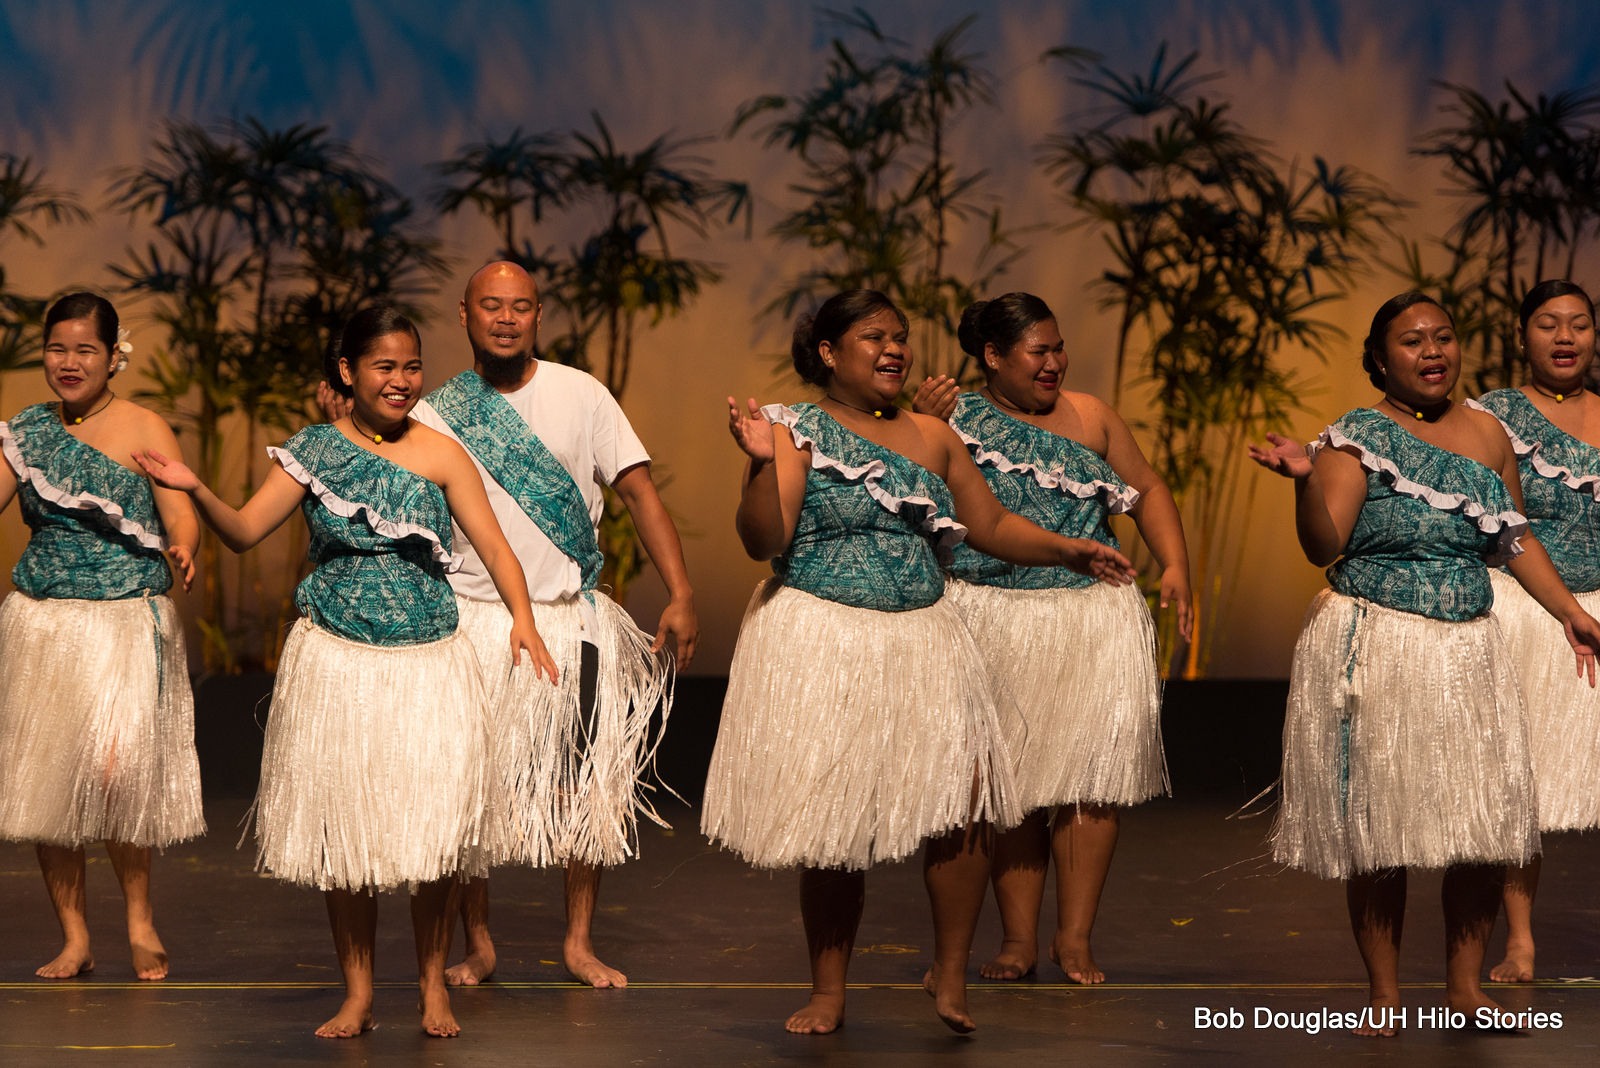 Group dancing, women in teal blue tops with ethnic print, and white grass skirts, Sweet and gentle dance.